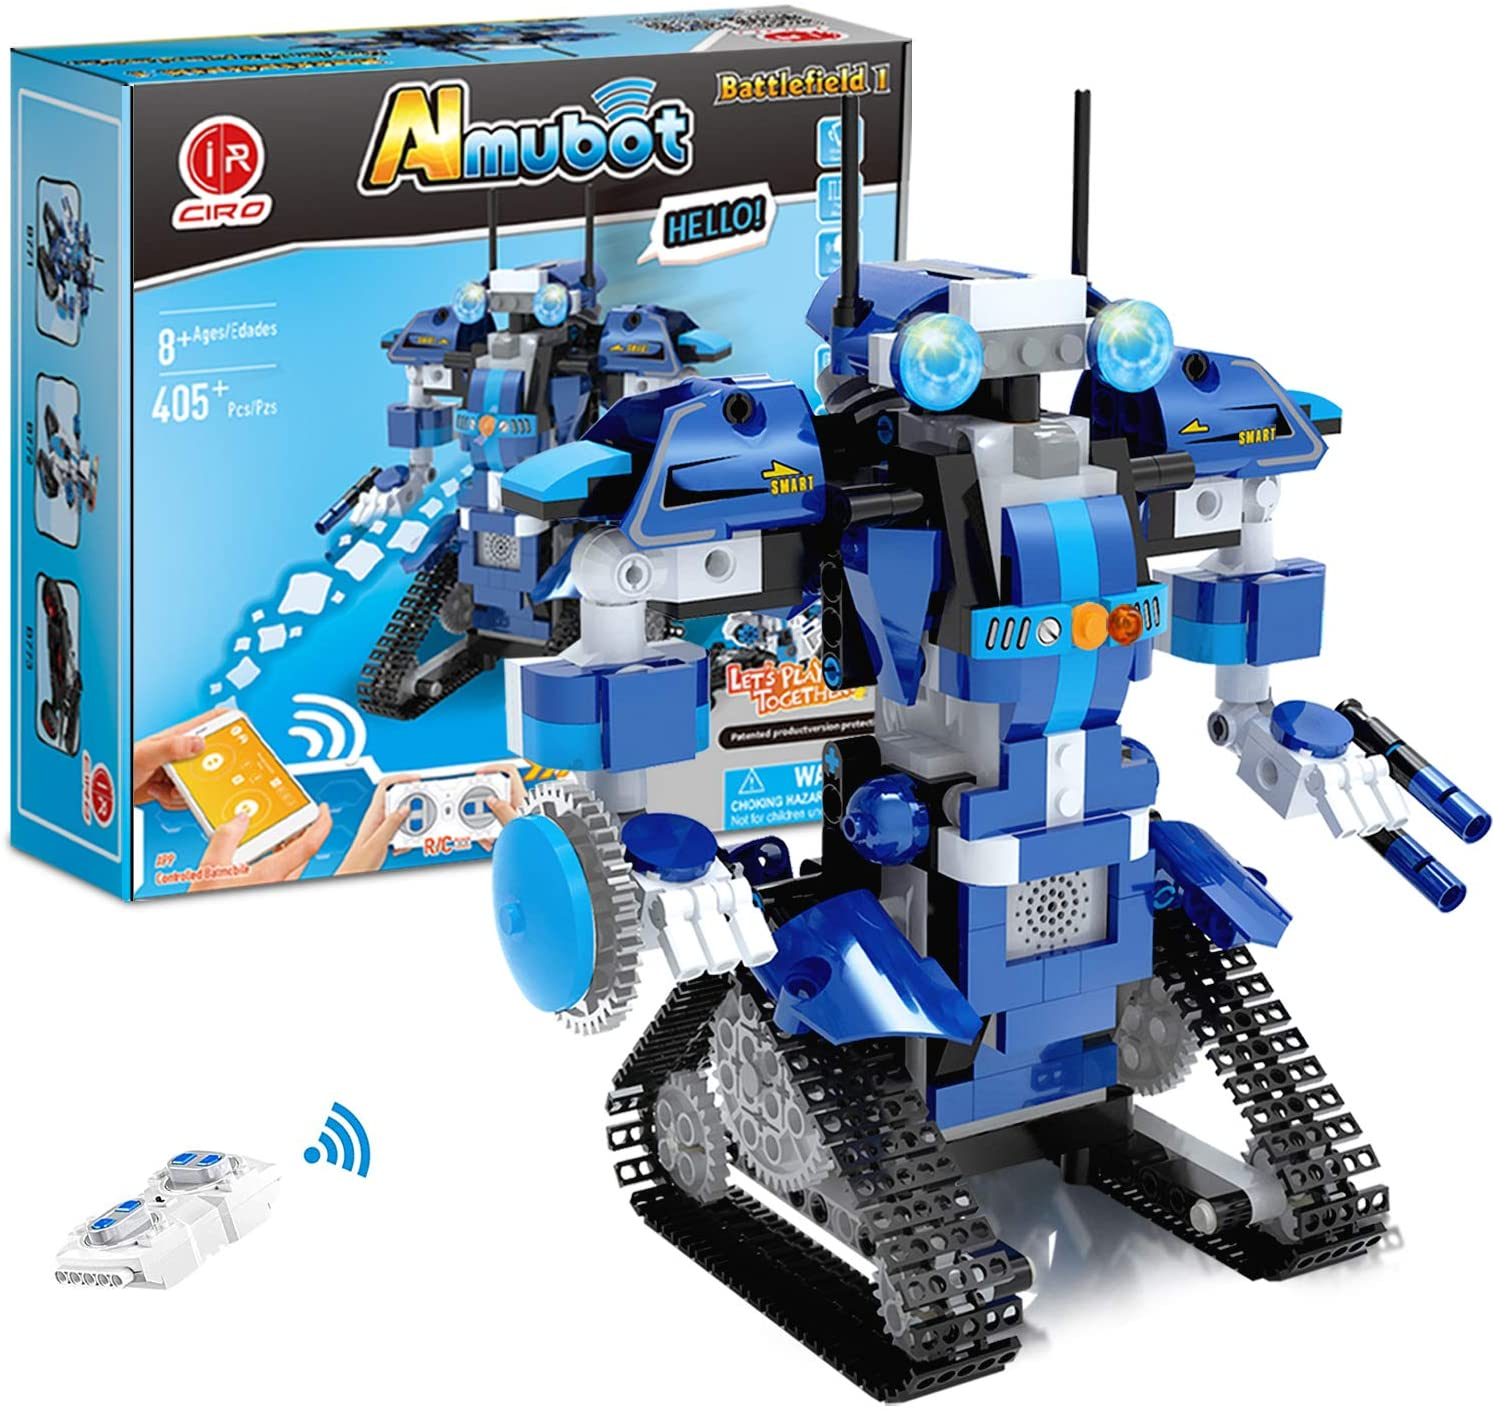 Remote & APP Controlled STEM Learning Educational Science Building Toys for Kids Ages 8+